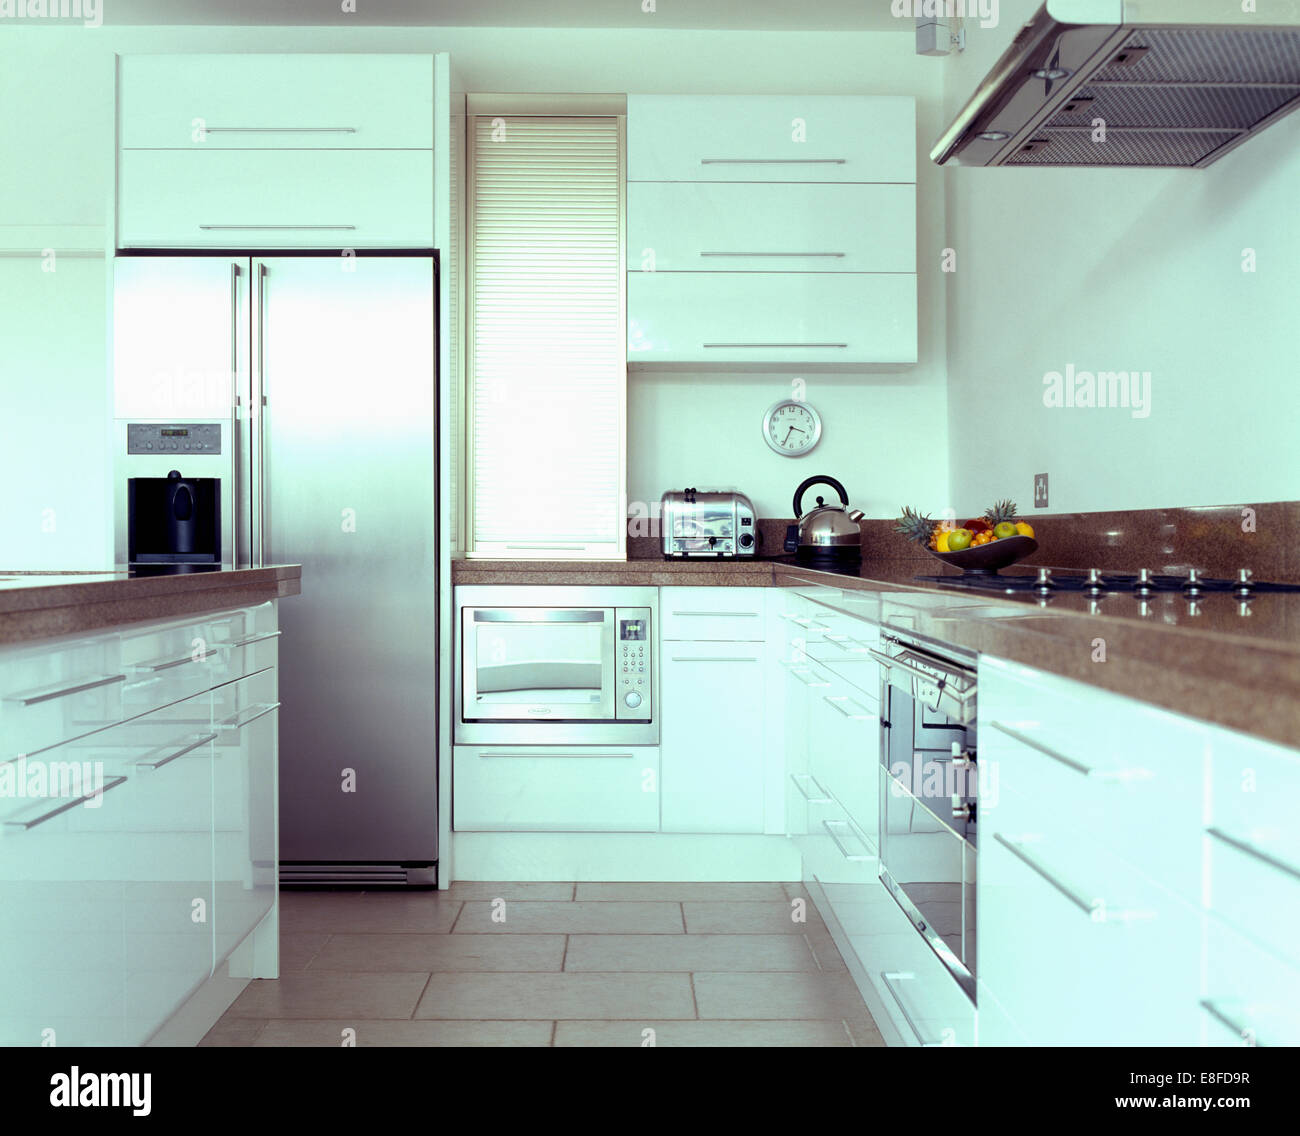 Modern Kitchen Oven: Modern White Kitchen With Microwave Oven In Fitted Unit